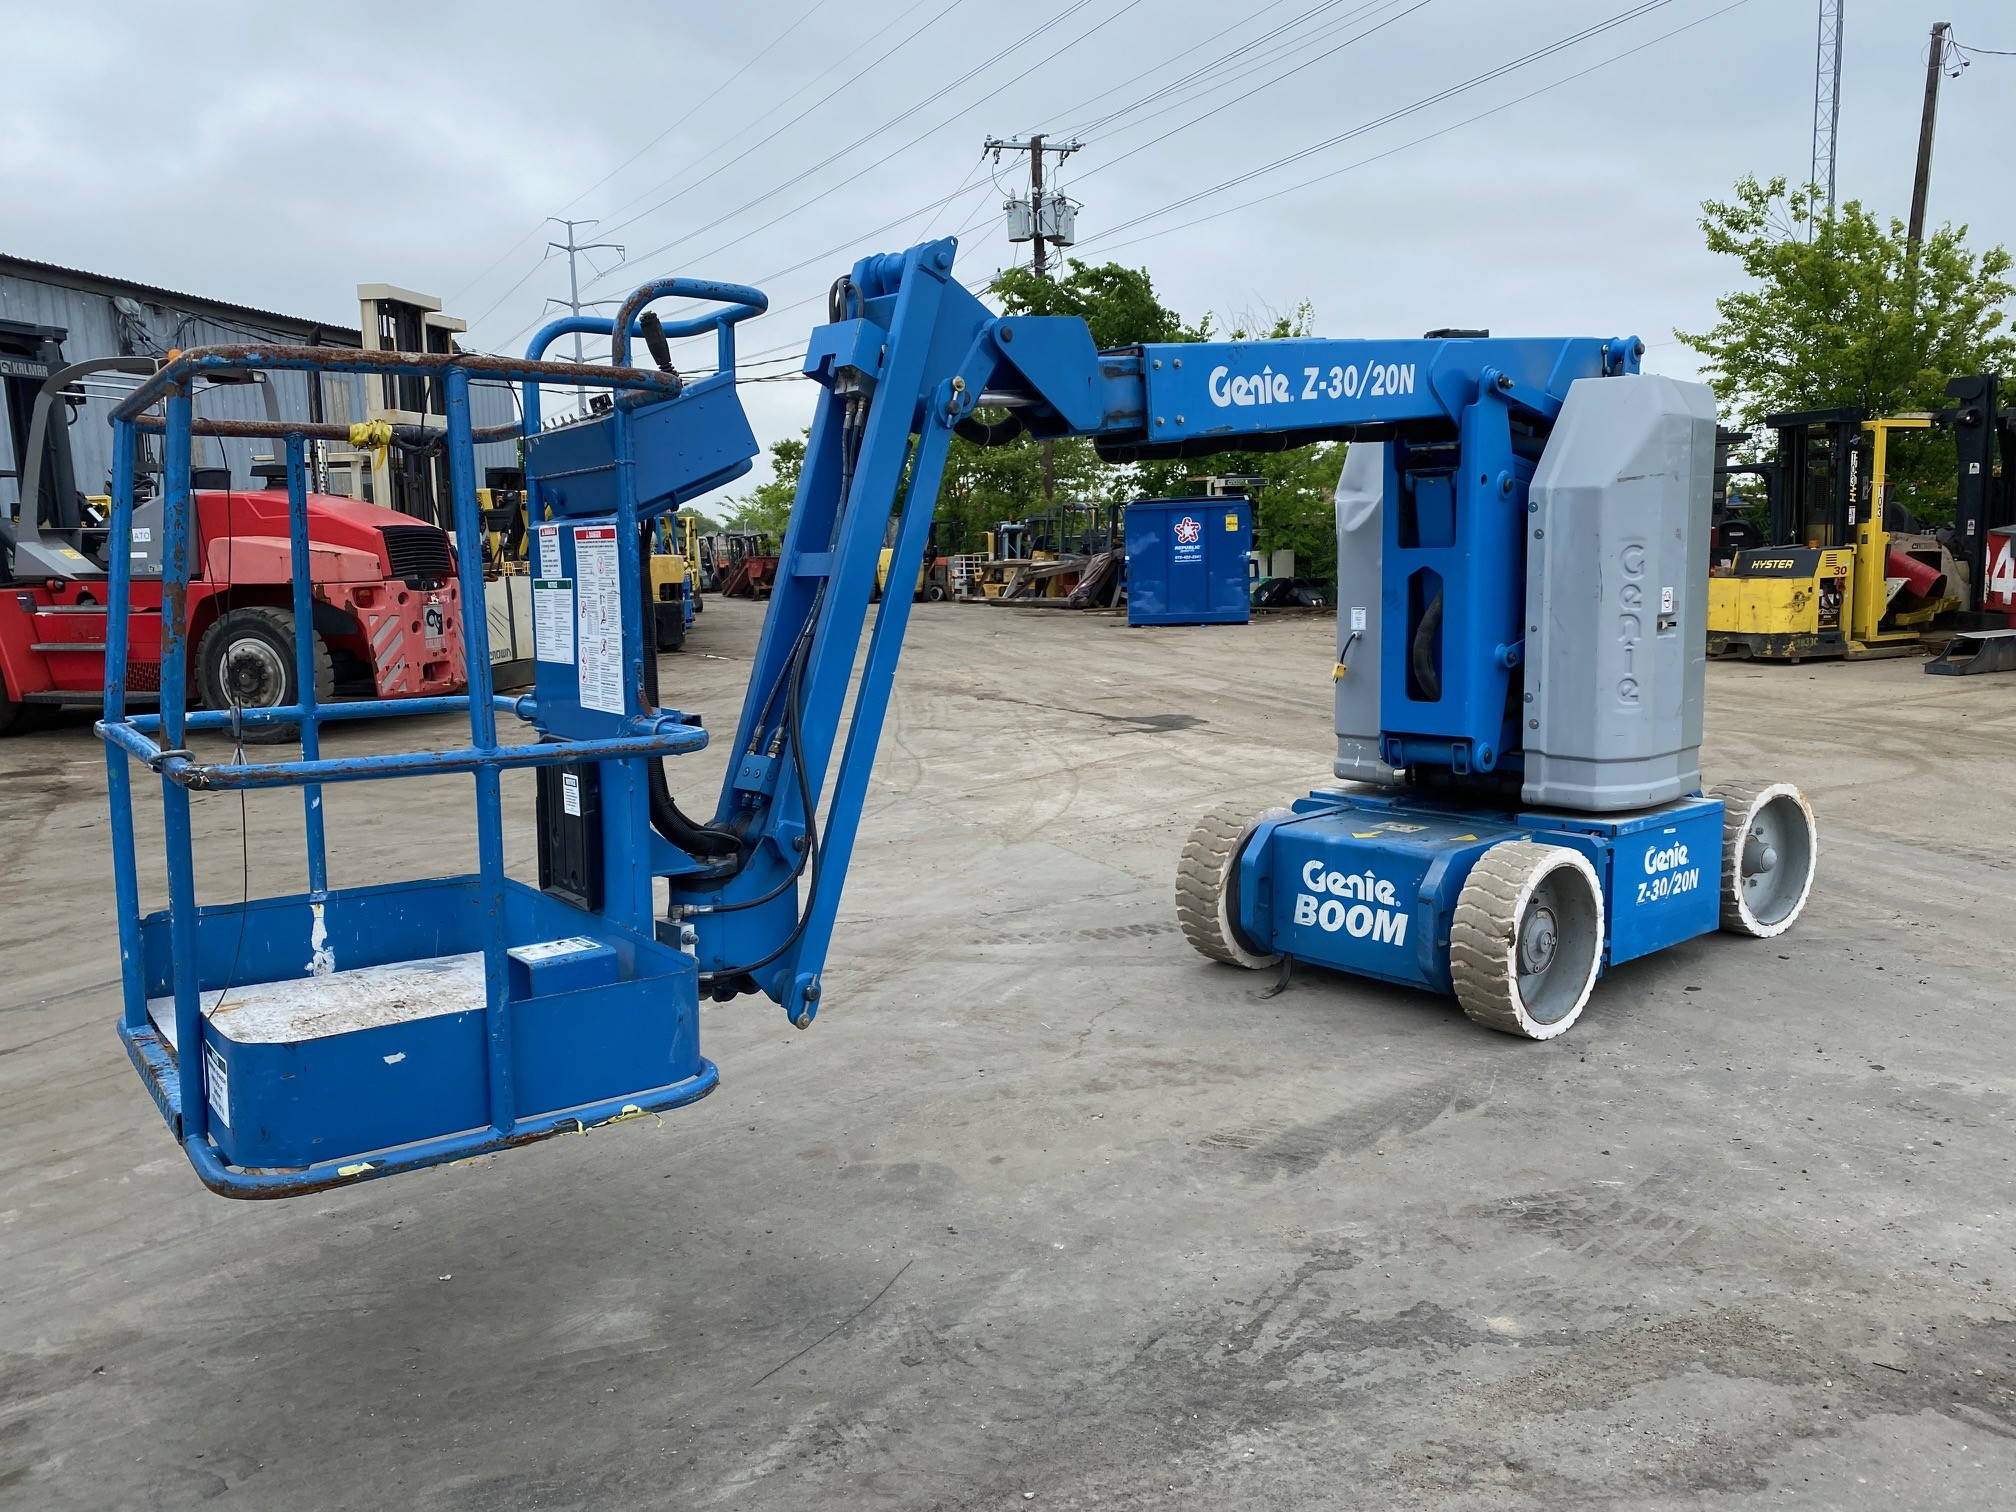 Used, 2014, Genie, Z™-30/20N, Aerial Work Platforms